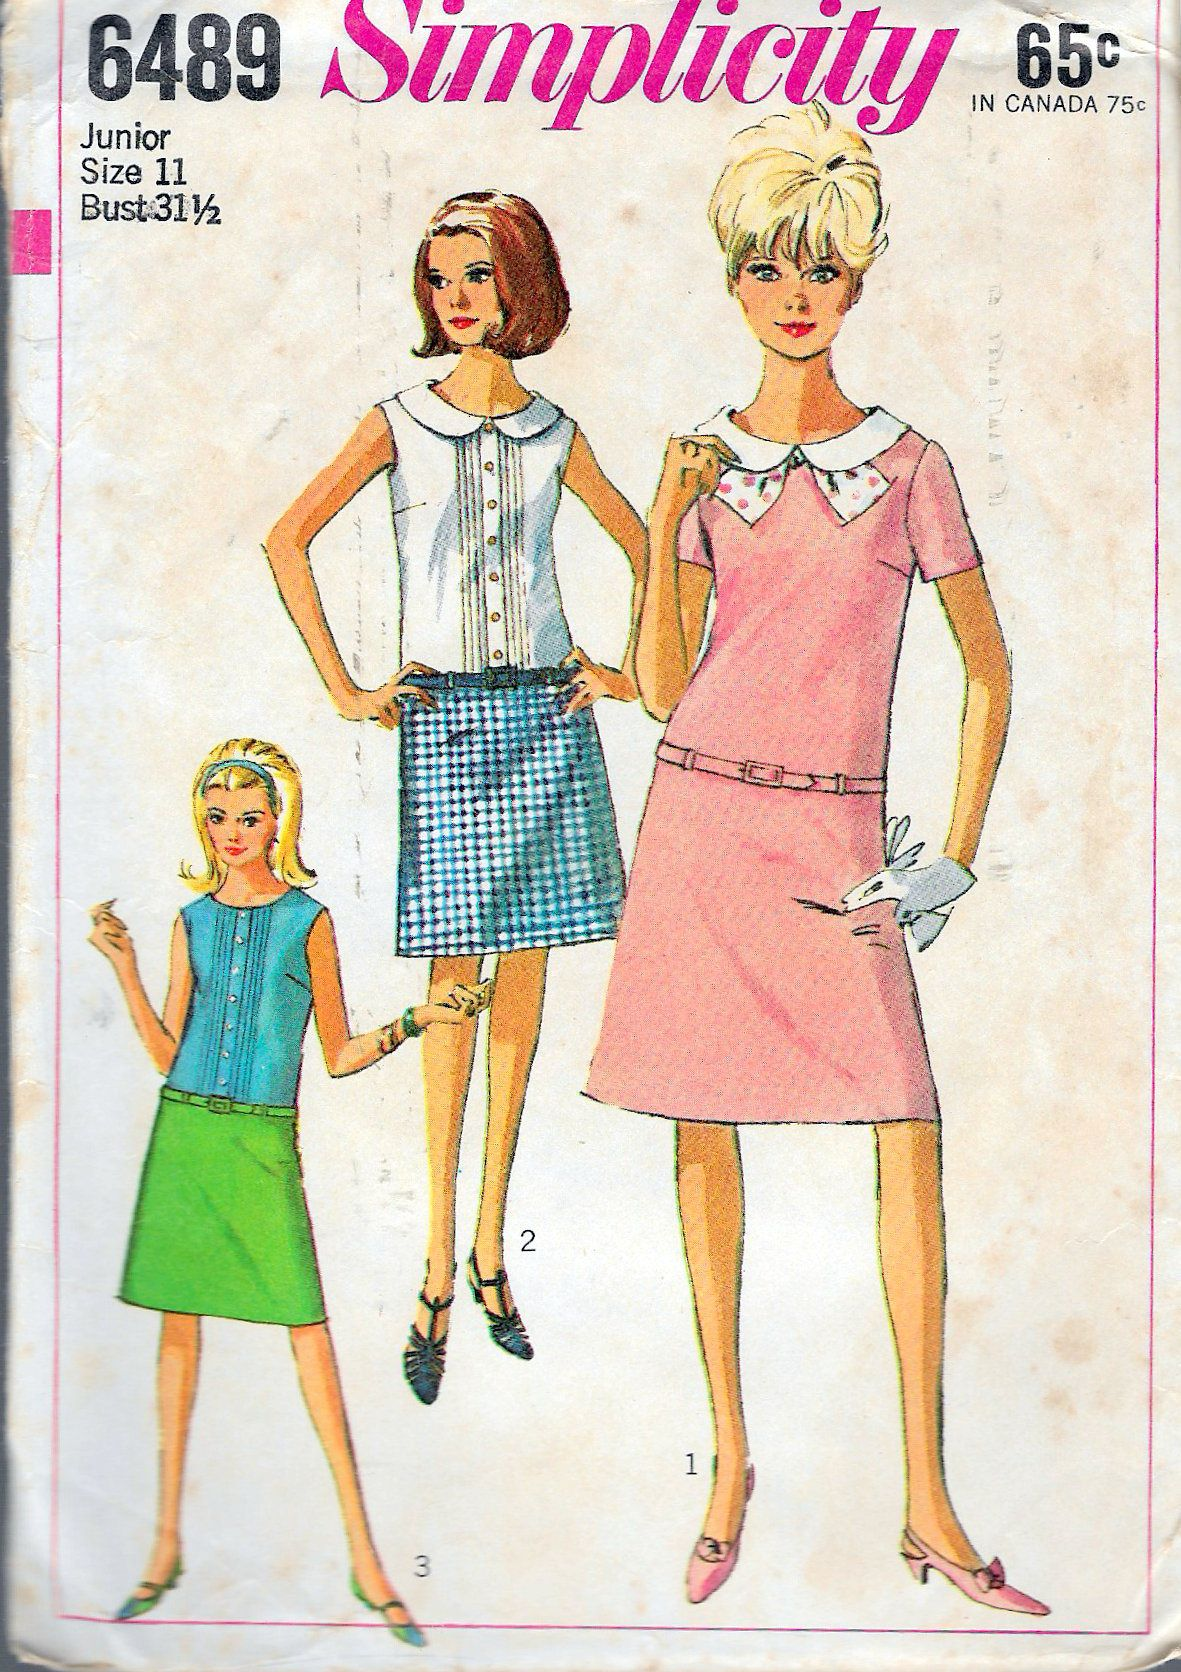 Vintage 1966 Simplicity 6489 Juniors Mod One Piece Dress Sewing Pattern Size 11 Bust 31 1 2 By Rec Vintage Sewing Patterns Vintage Sewing 60s And 70s Fashion